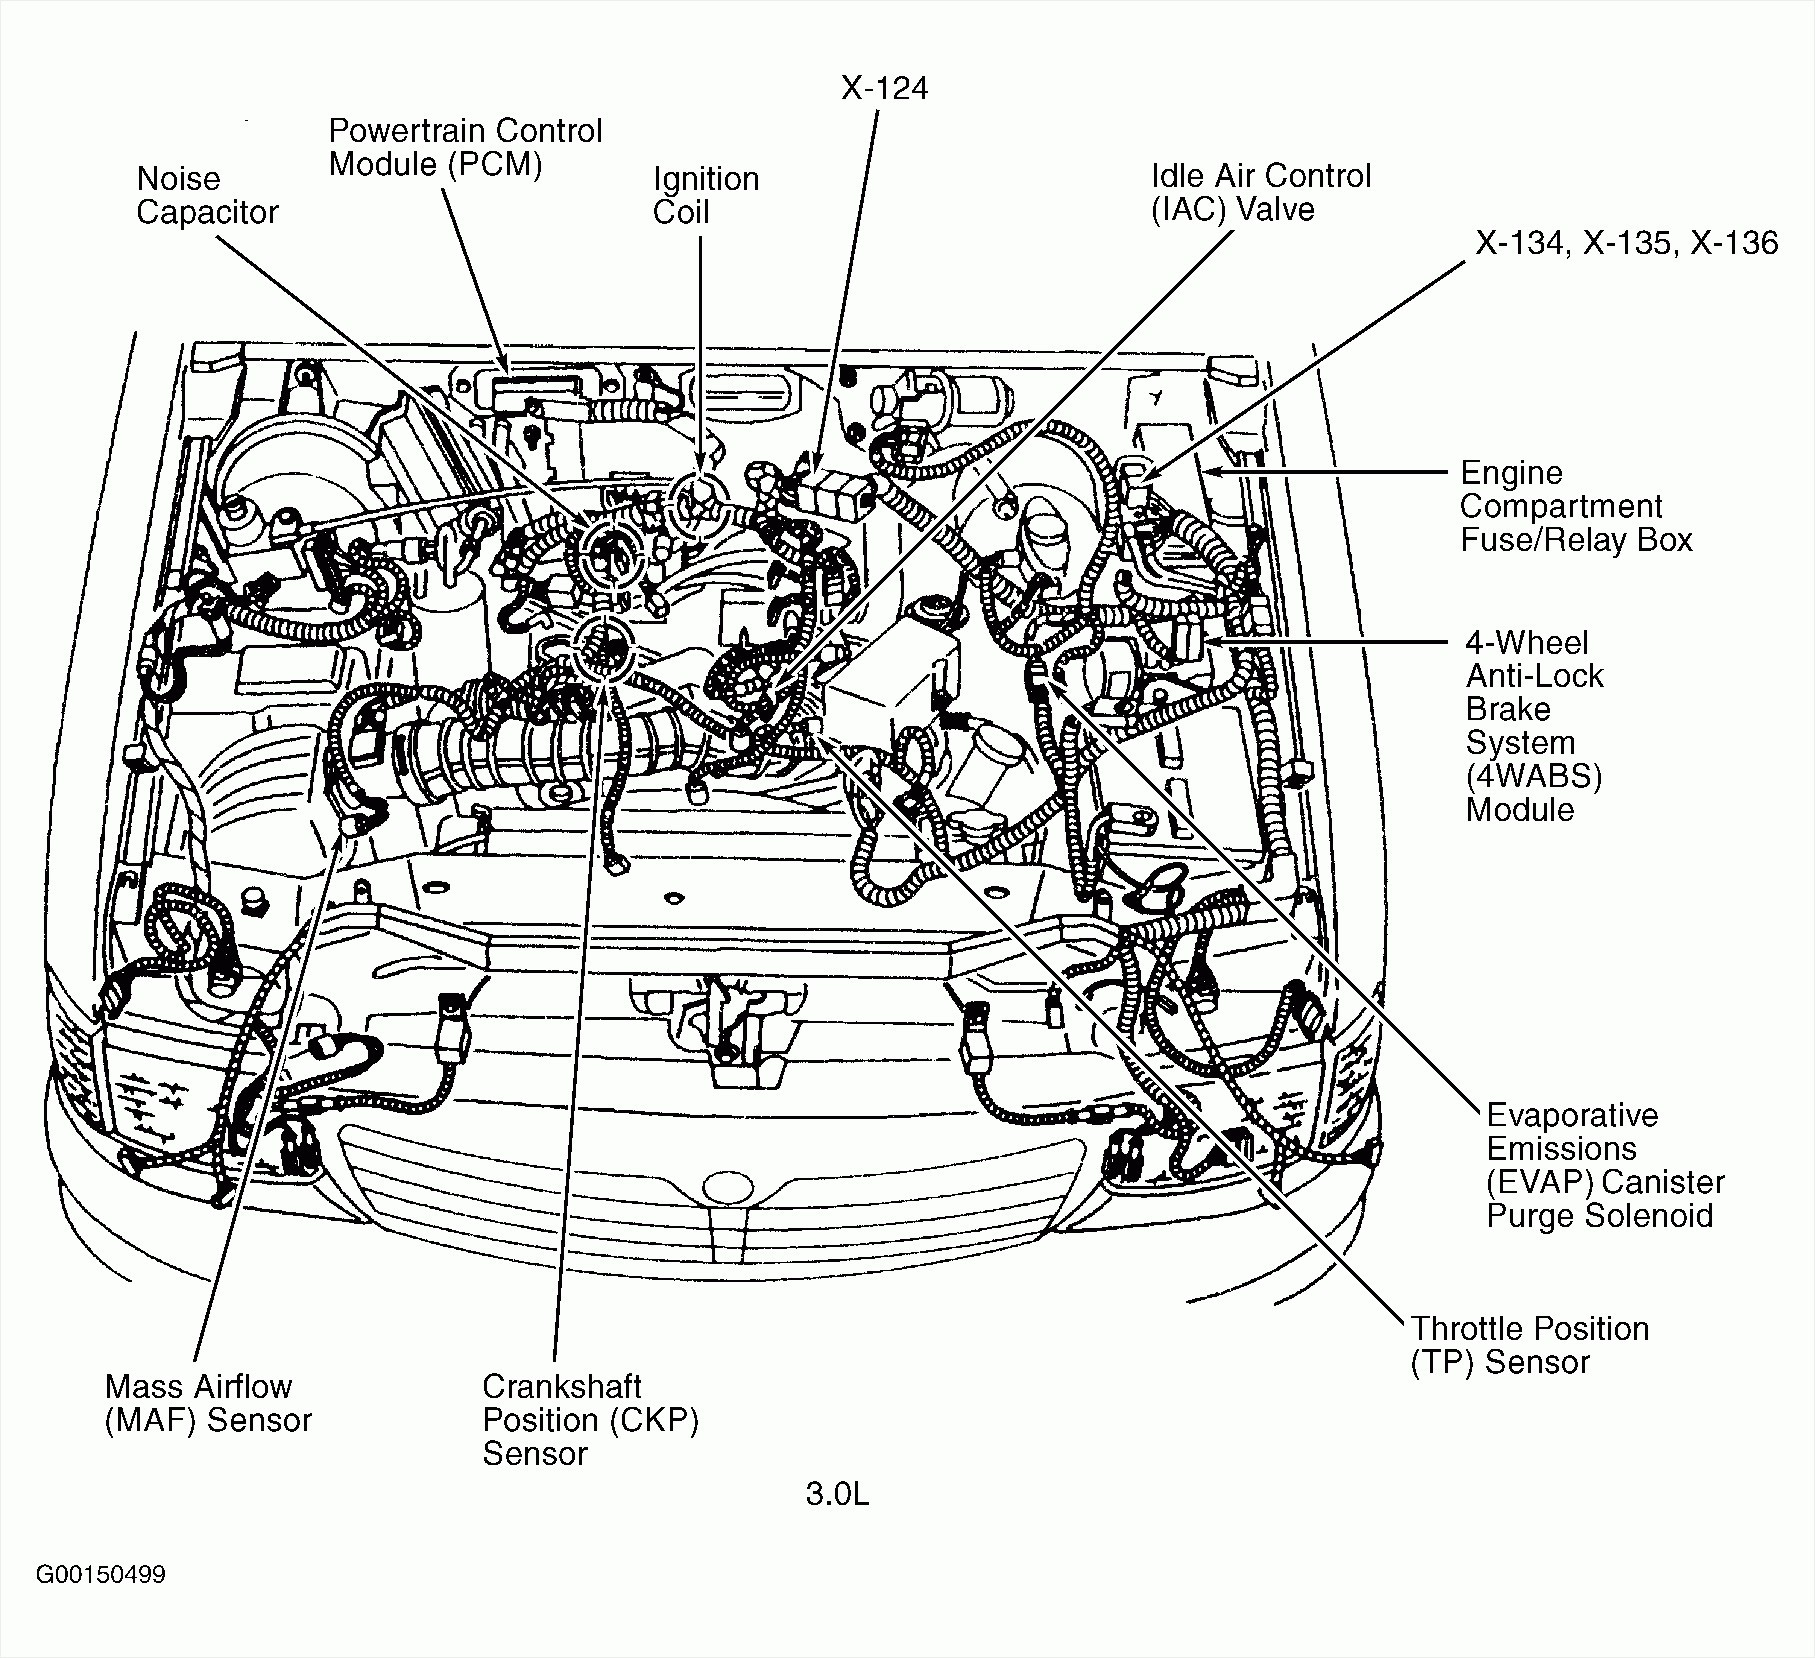 hight resolution of 94 mazda miata engine diagram wiring library 2000 mazda millenia engine diagram mazda millenia engine diagram